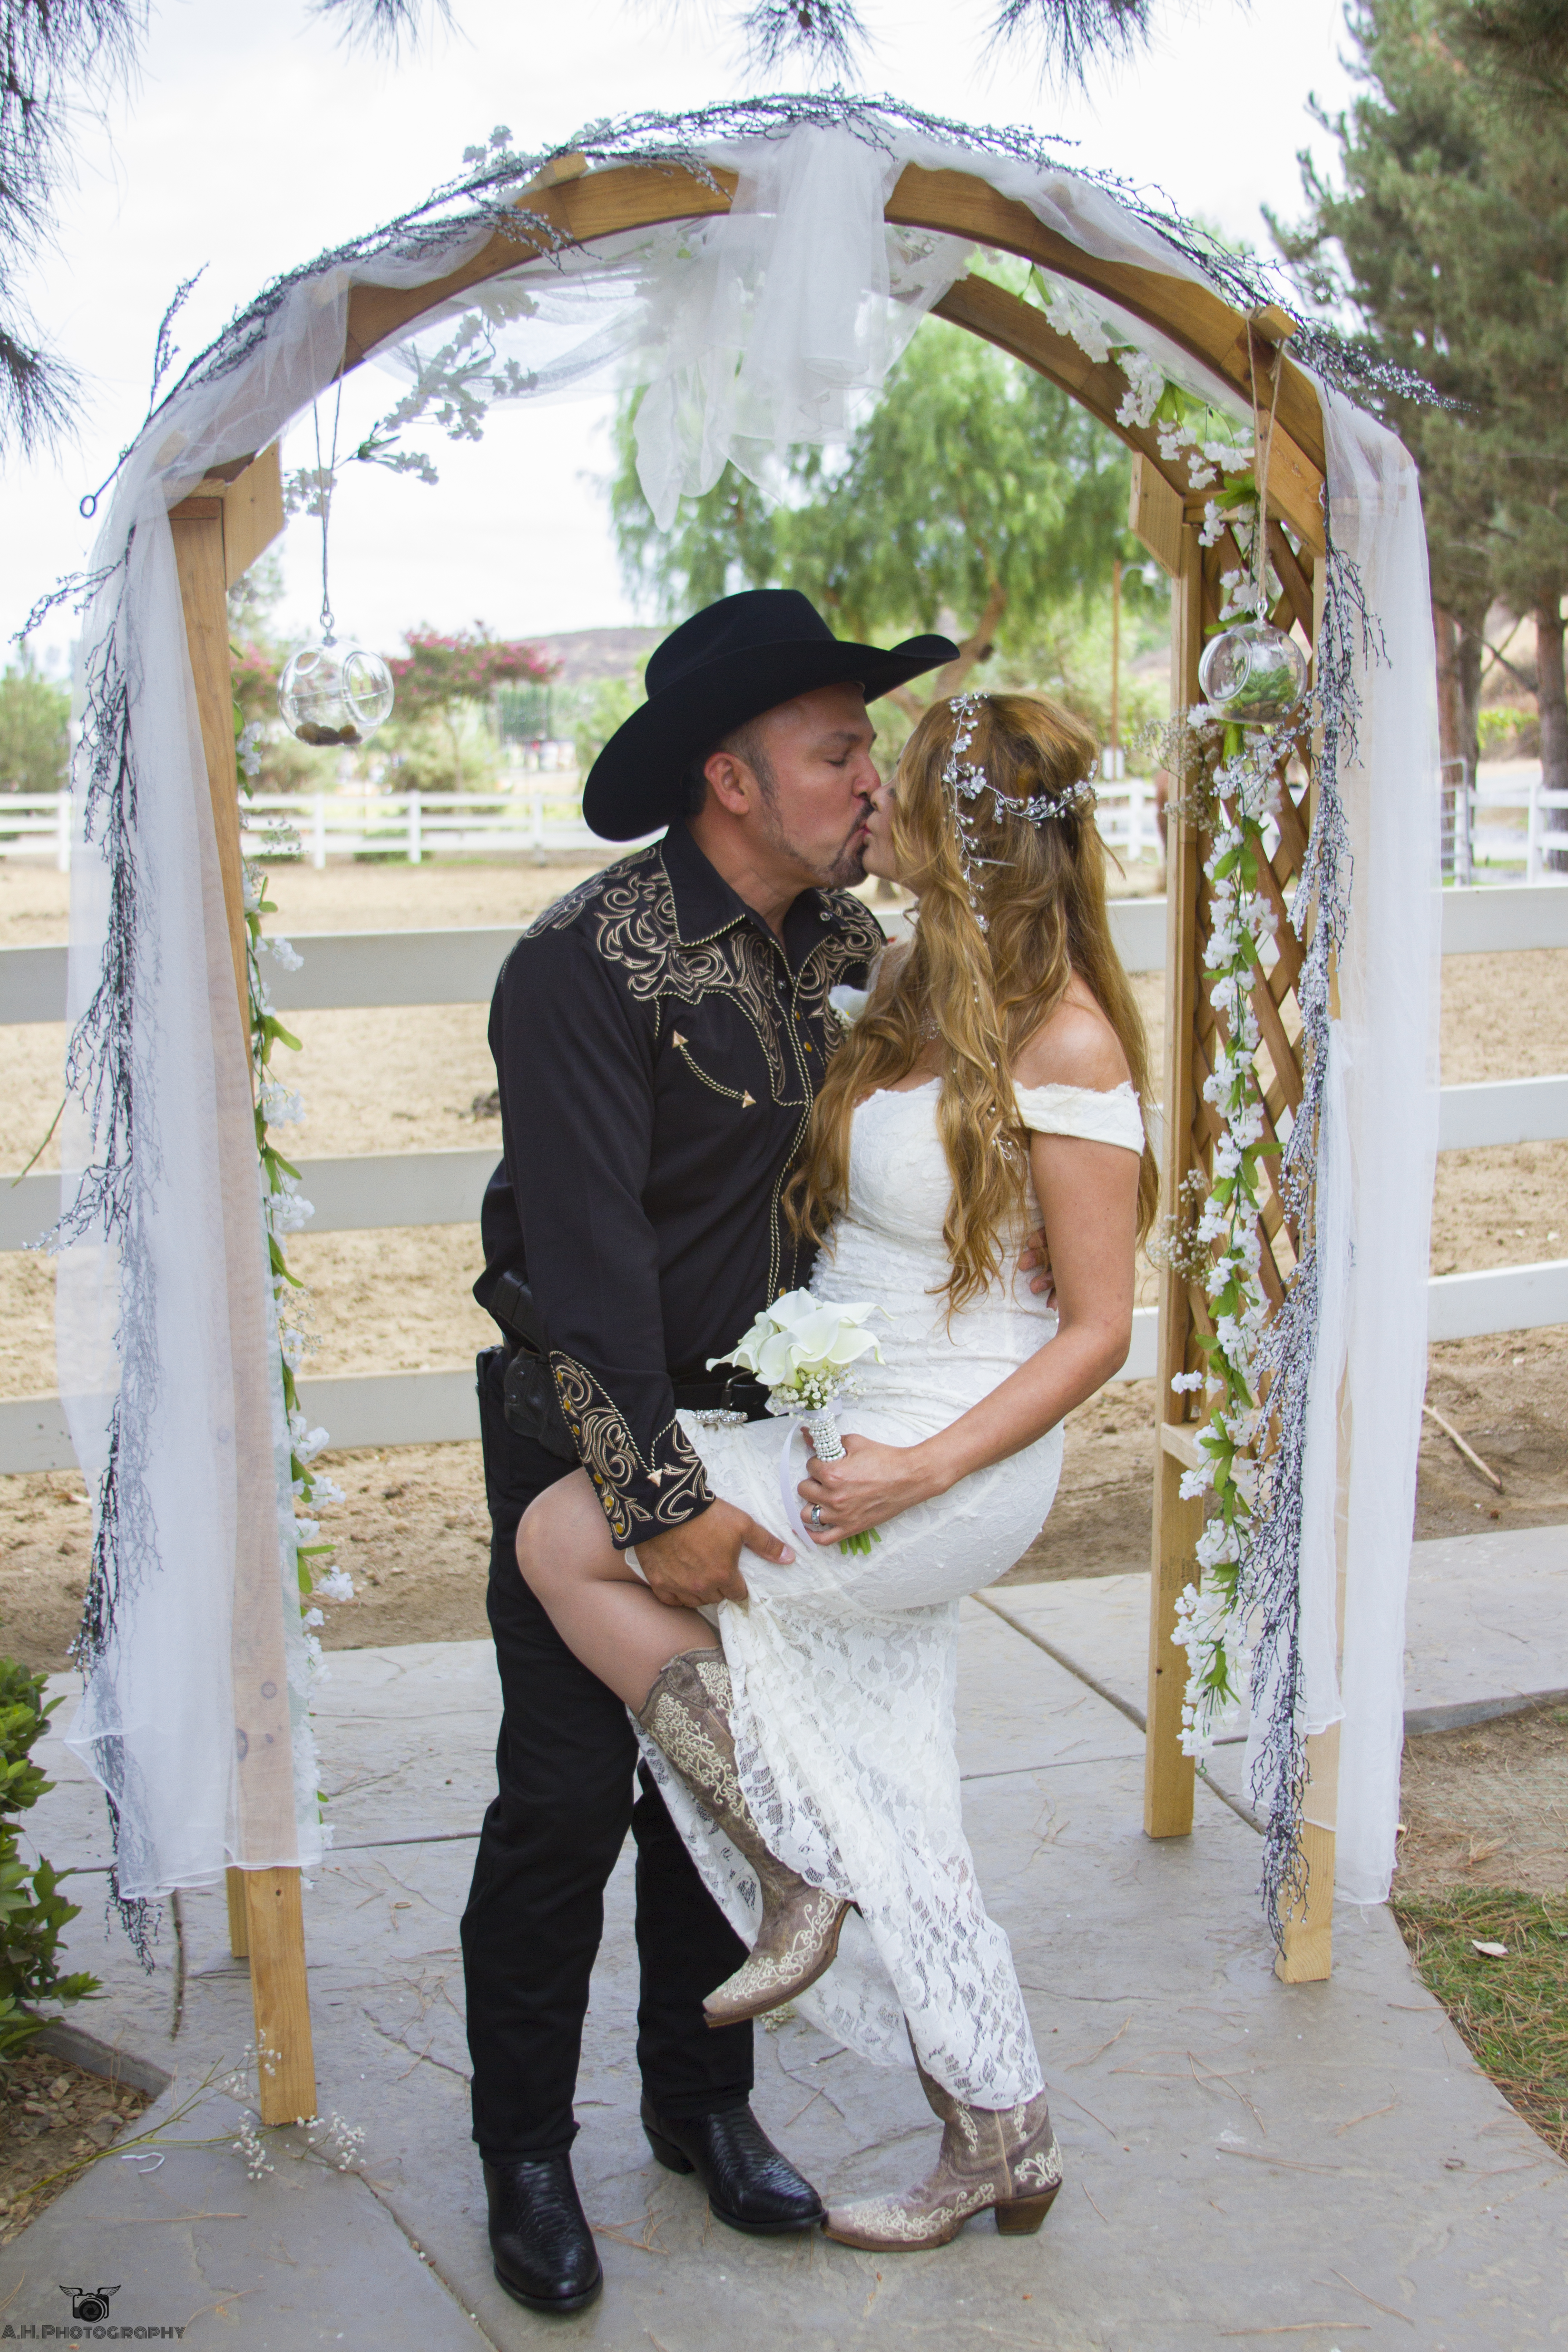 Wedding Photography in Temecula,CA